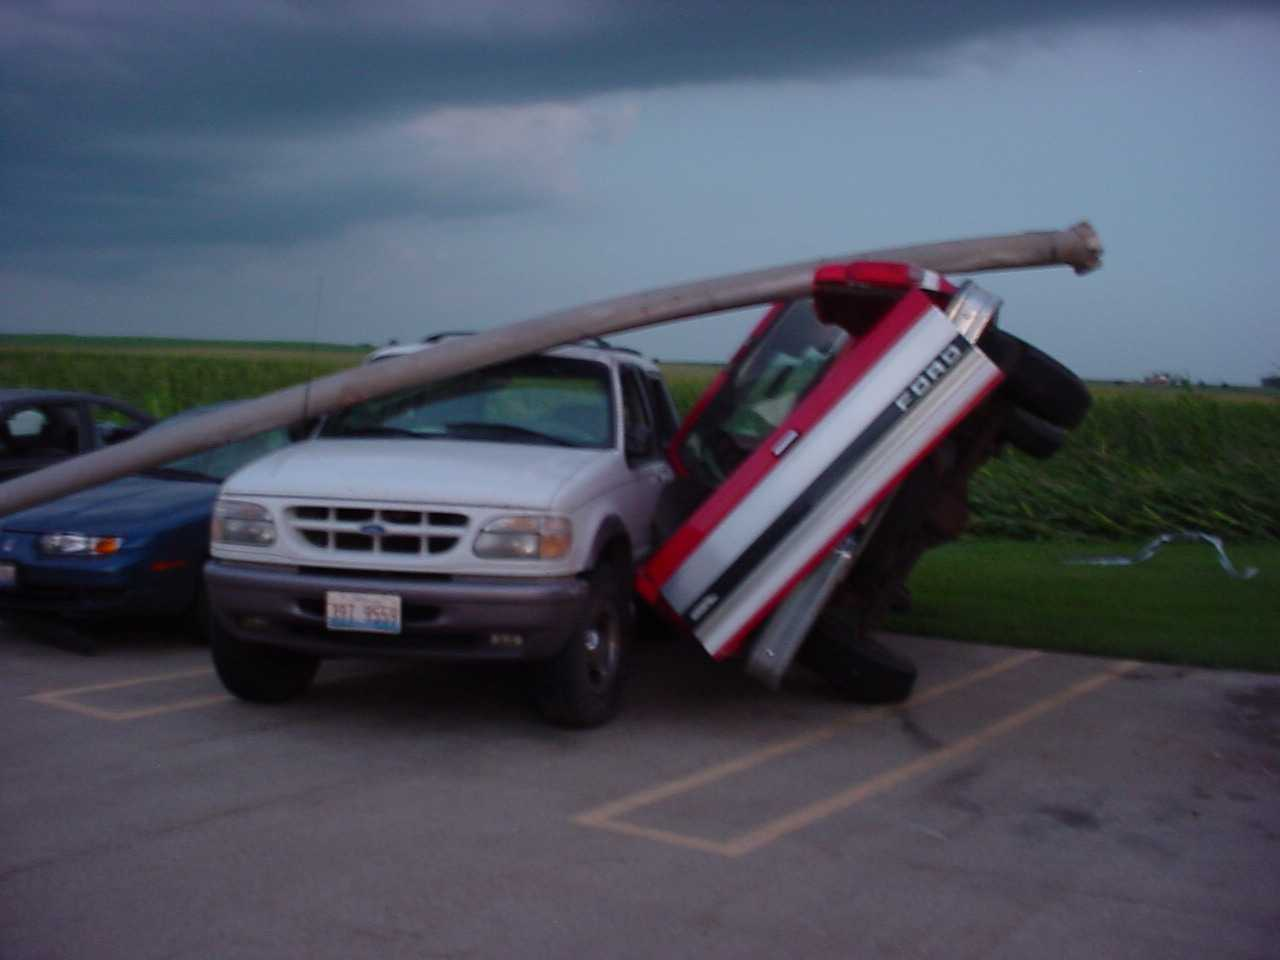 Vehicles damaged by the tornado. Photo by Jason Malson